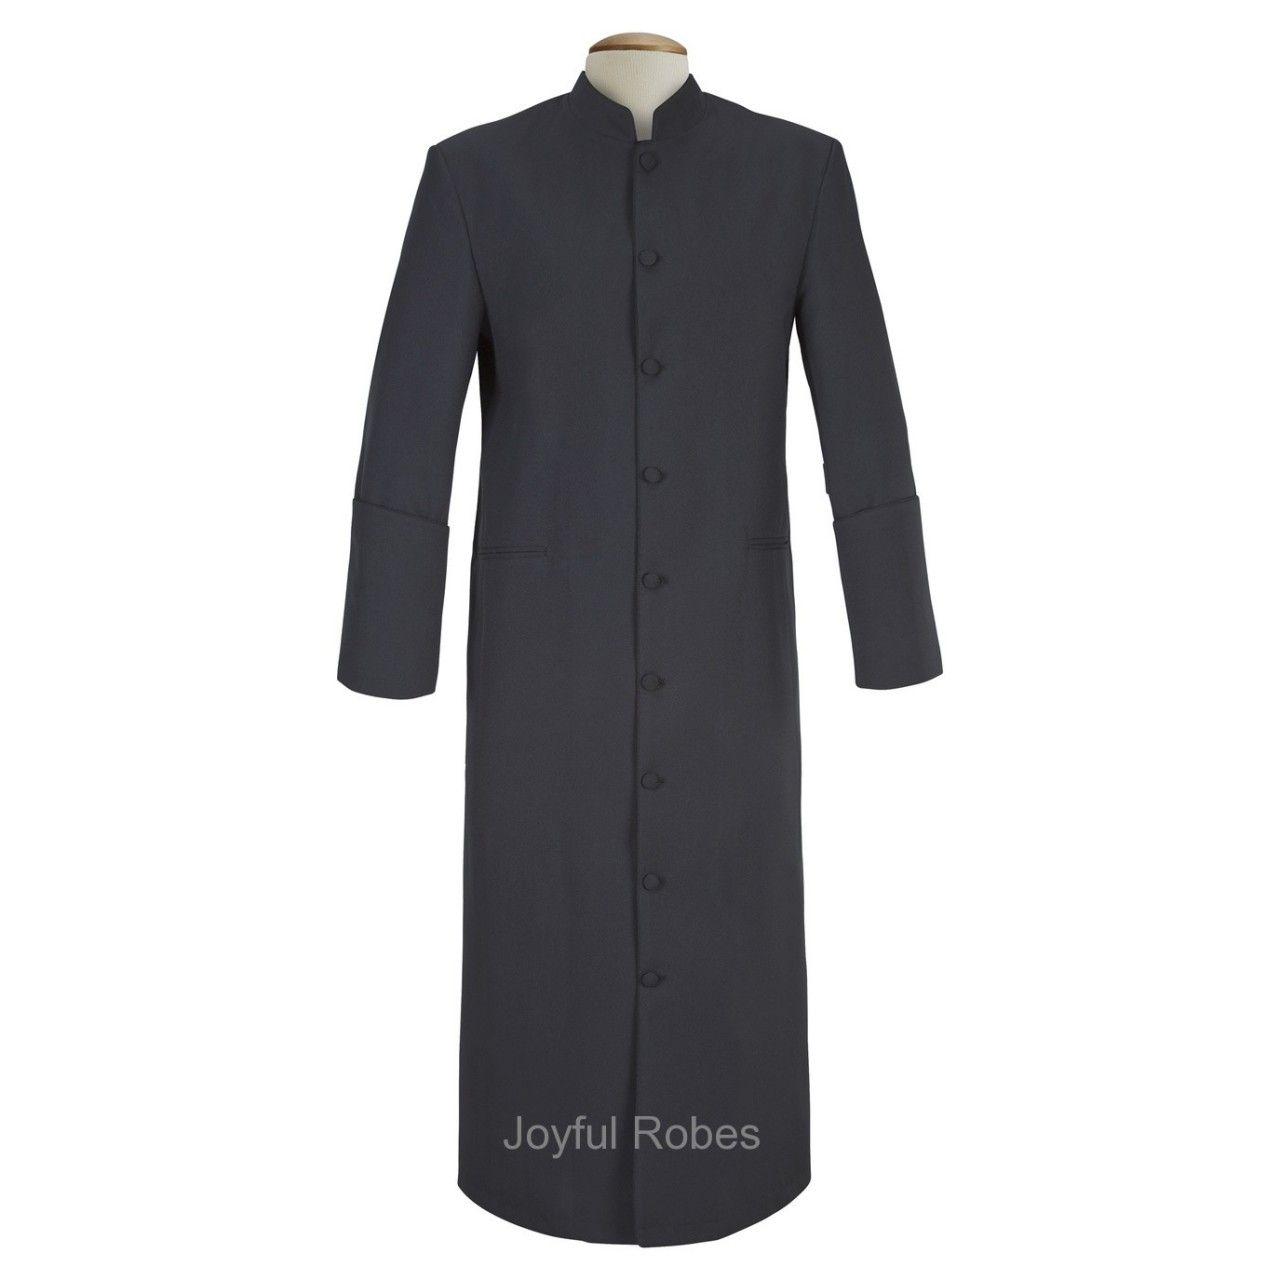 101 W. Women's Pastor/Clergy Robe Solid Black